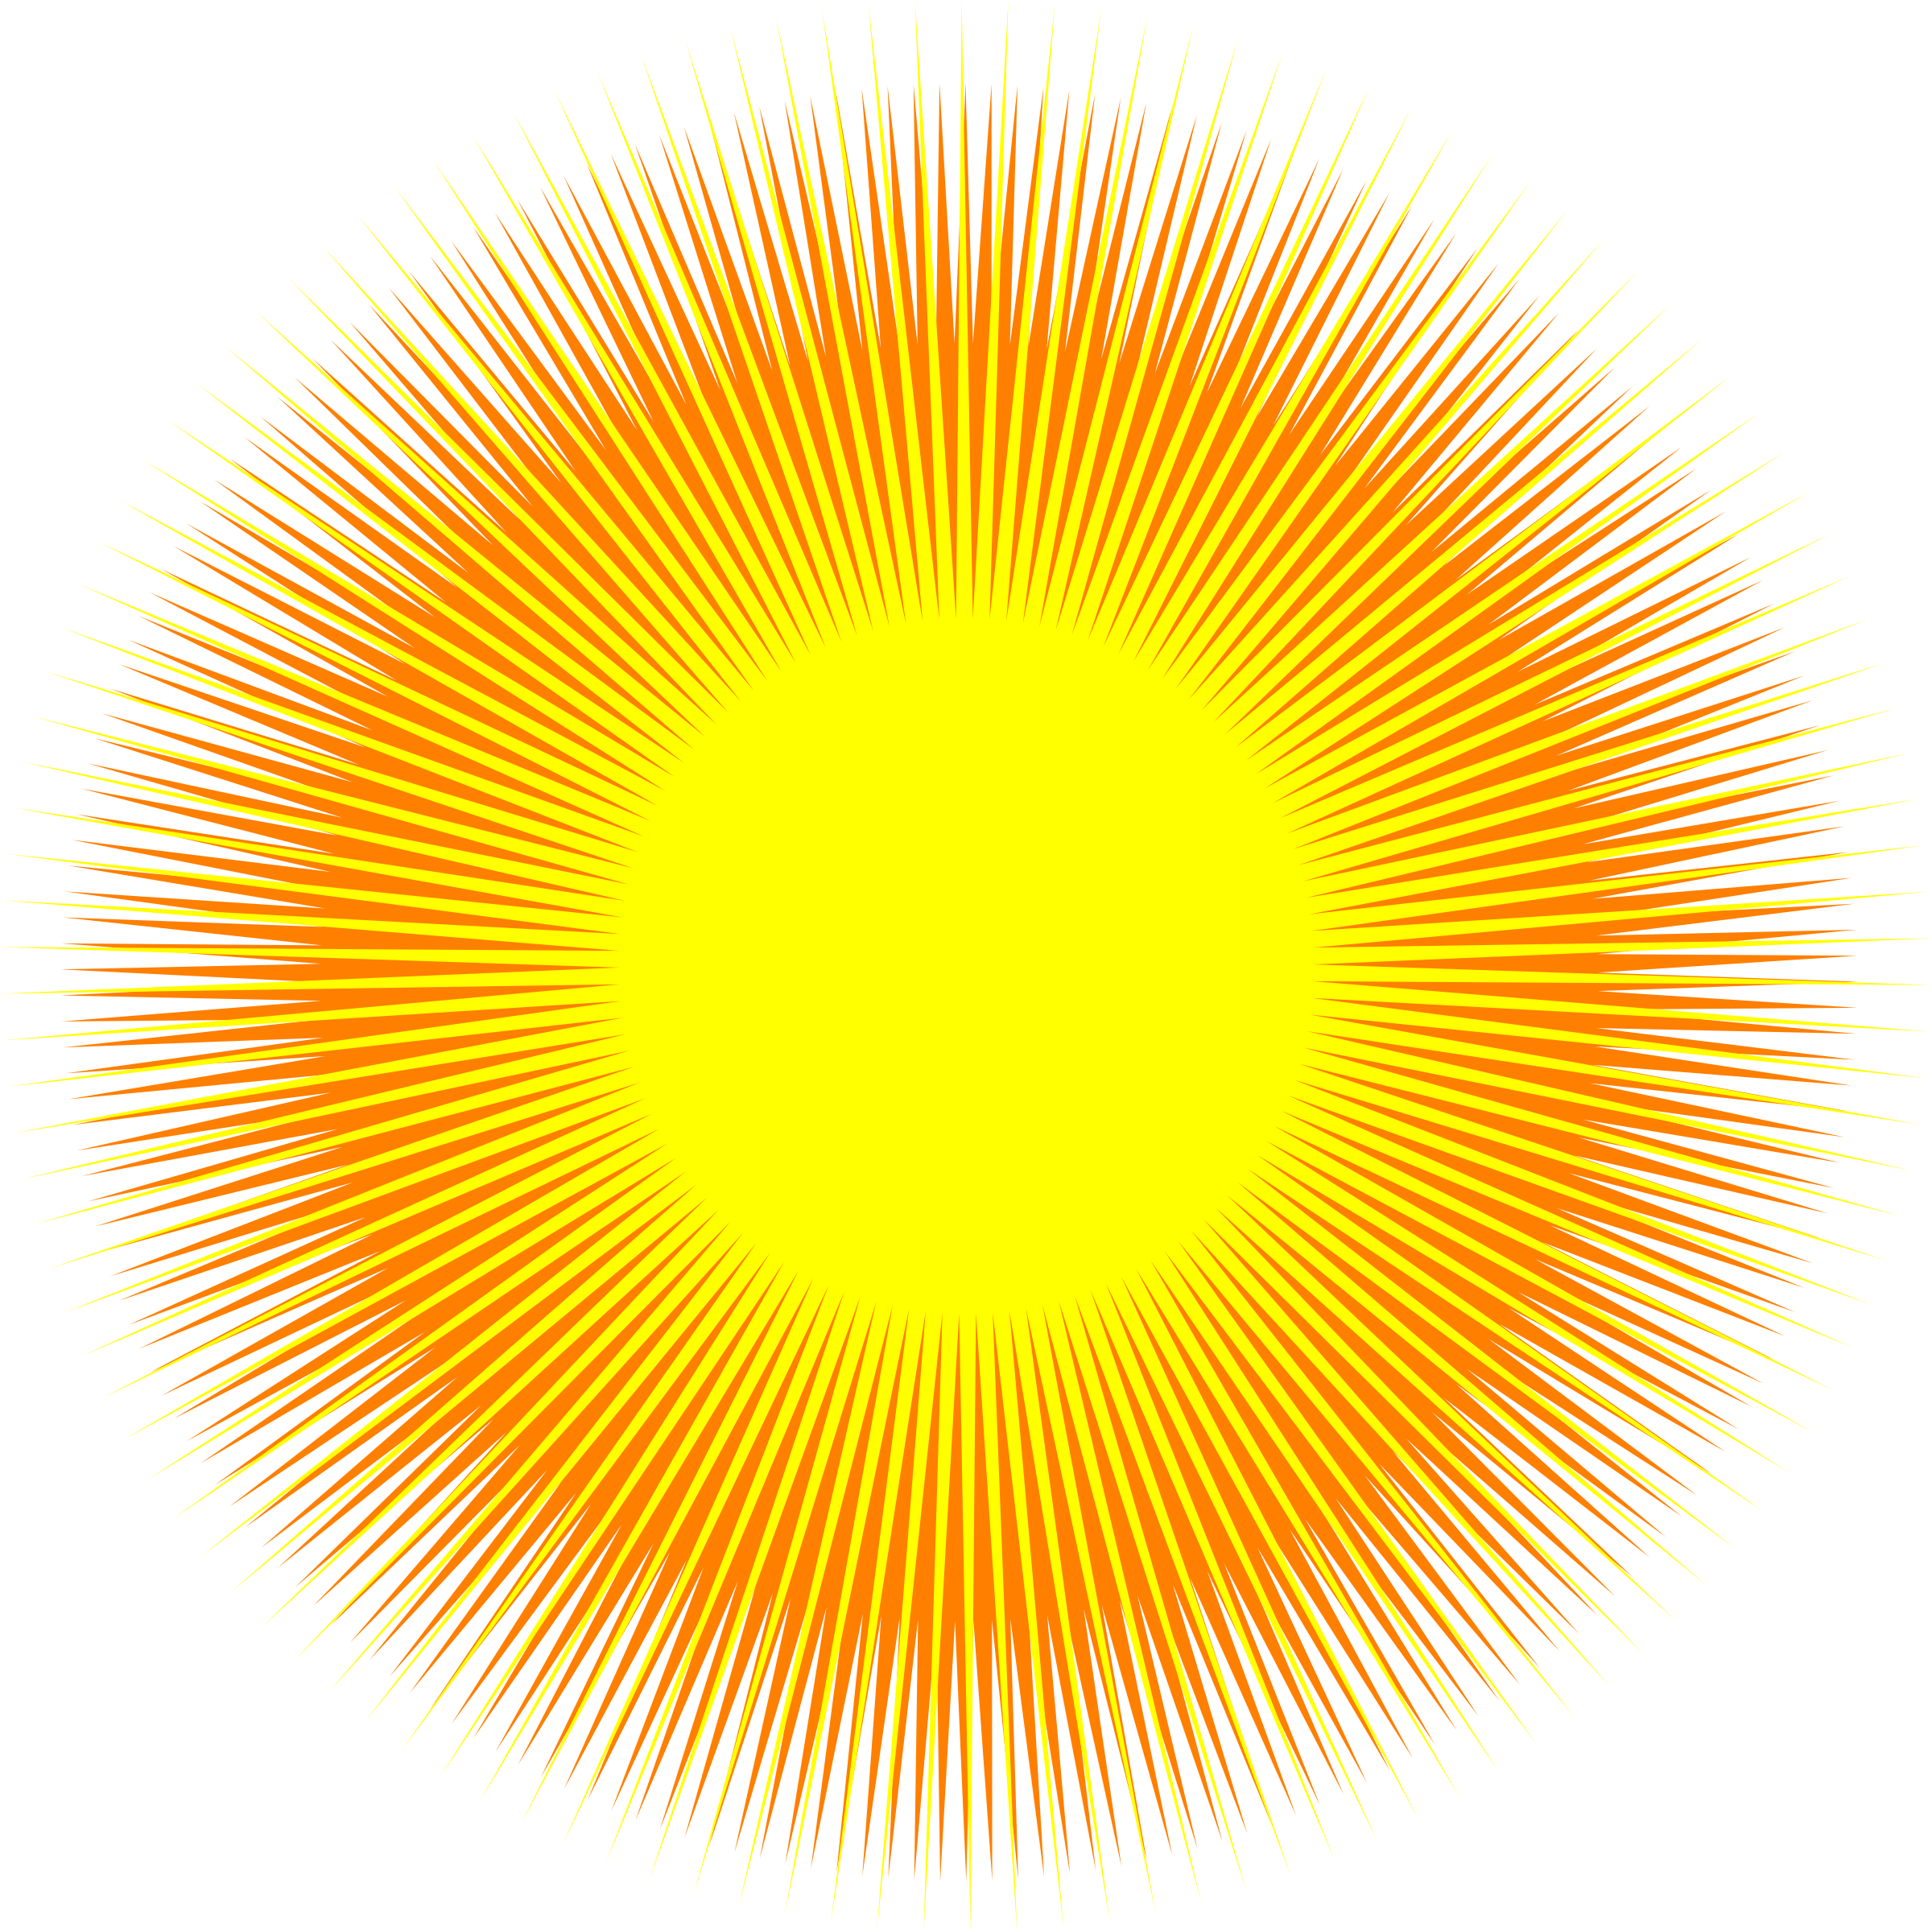 Sun rays clipart png jpg transparent stock PNG The Sun Transparent The Sun.PNG Images. | PlusPNG jpg transparent stock